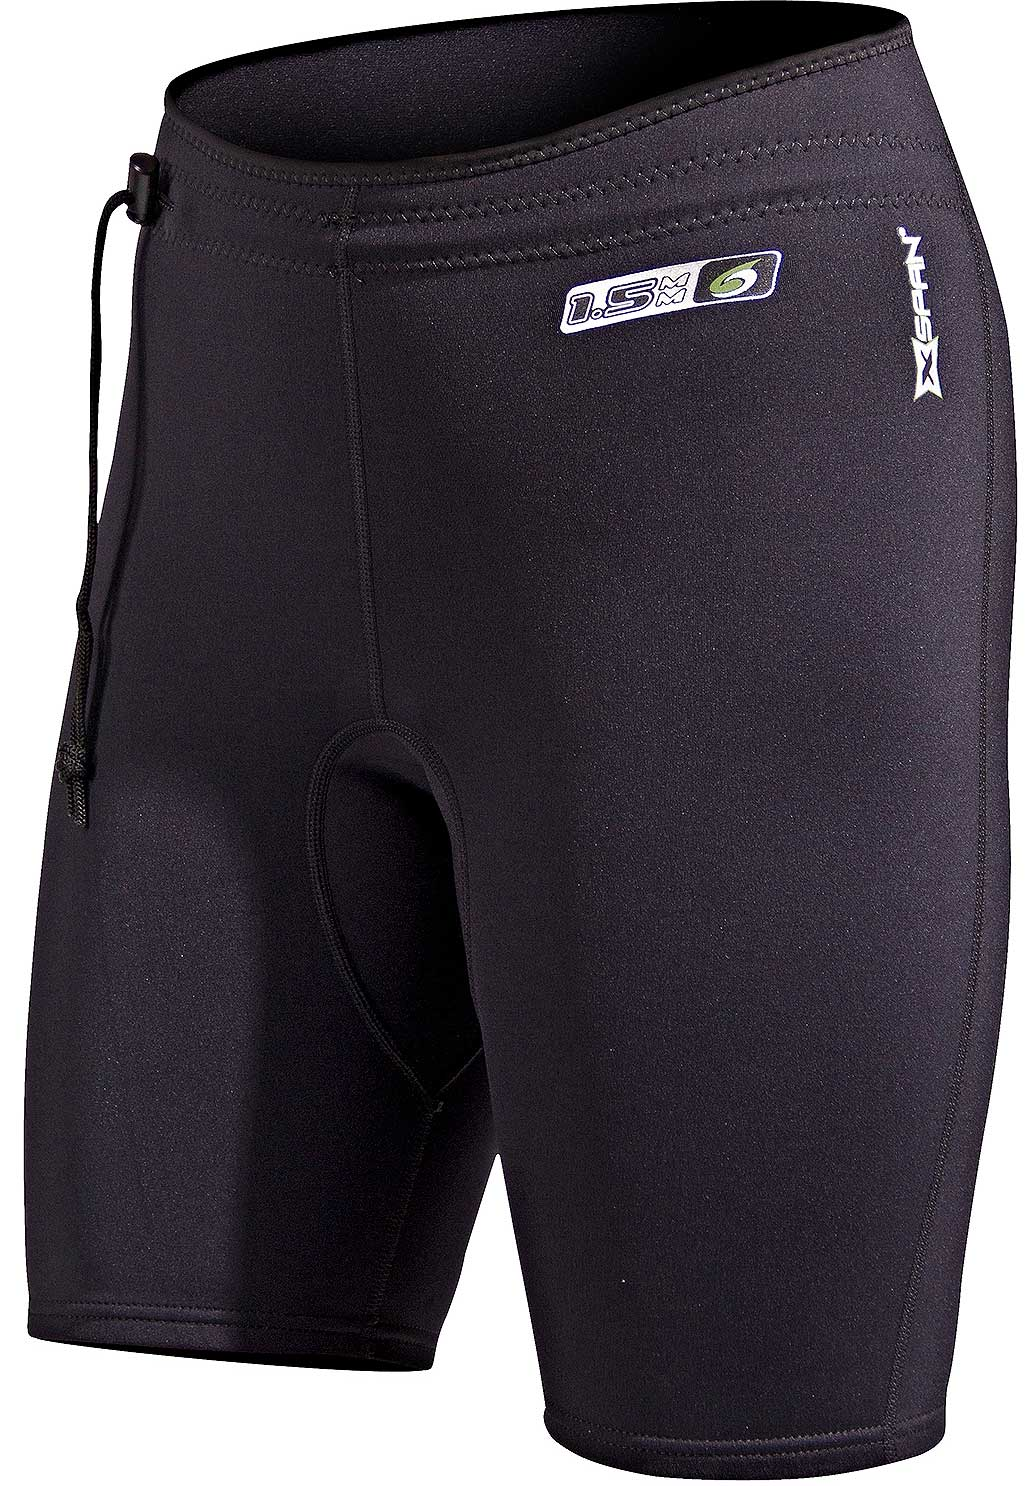 NeoSport XSPAN Shorts for Men & Women